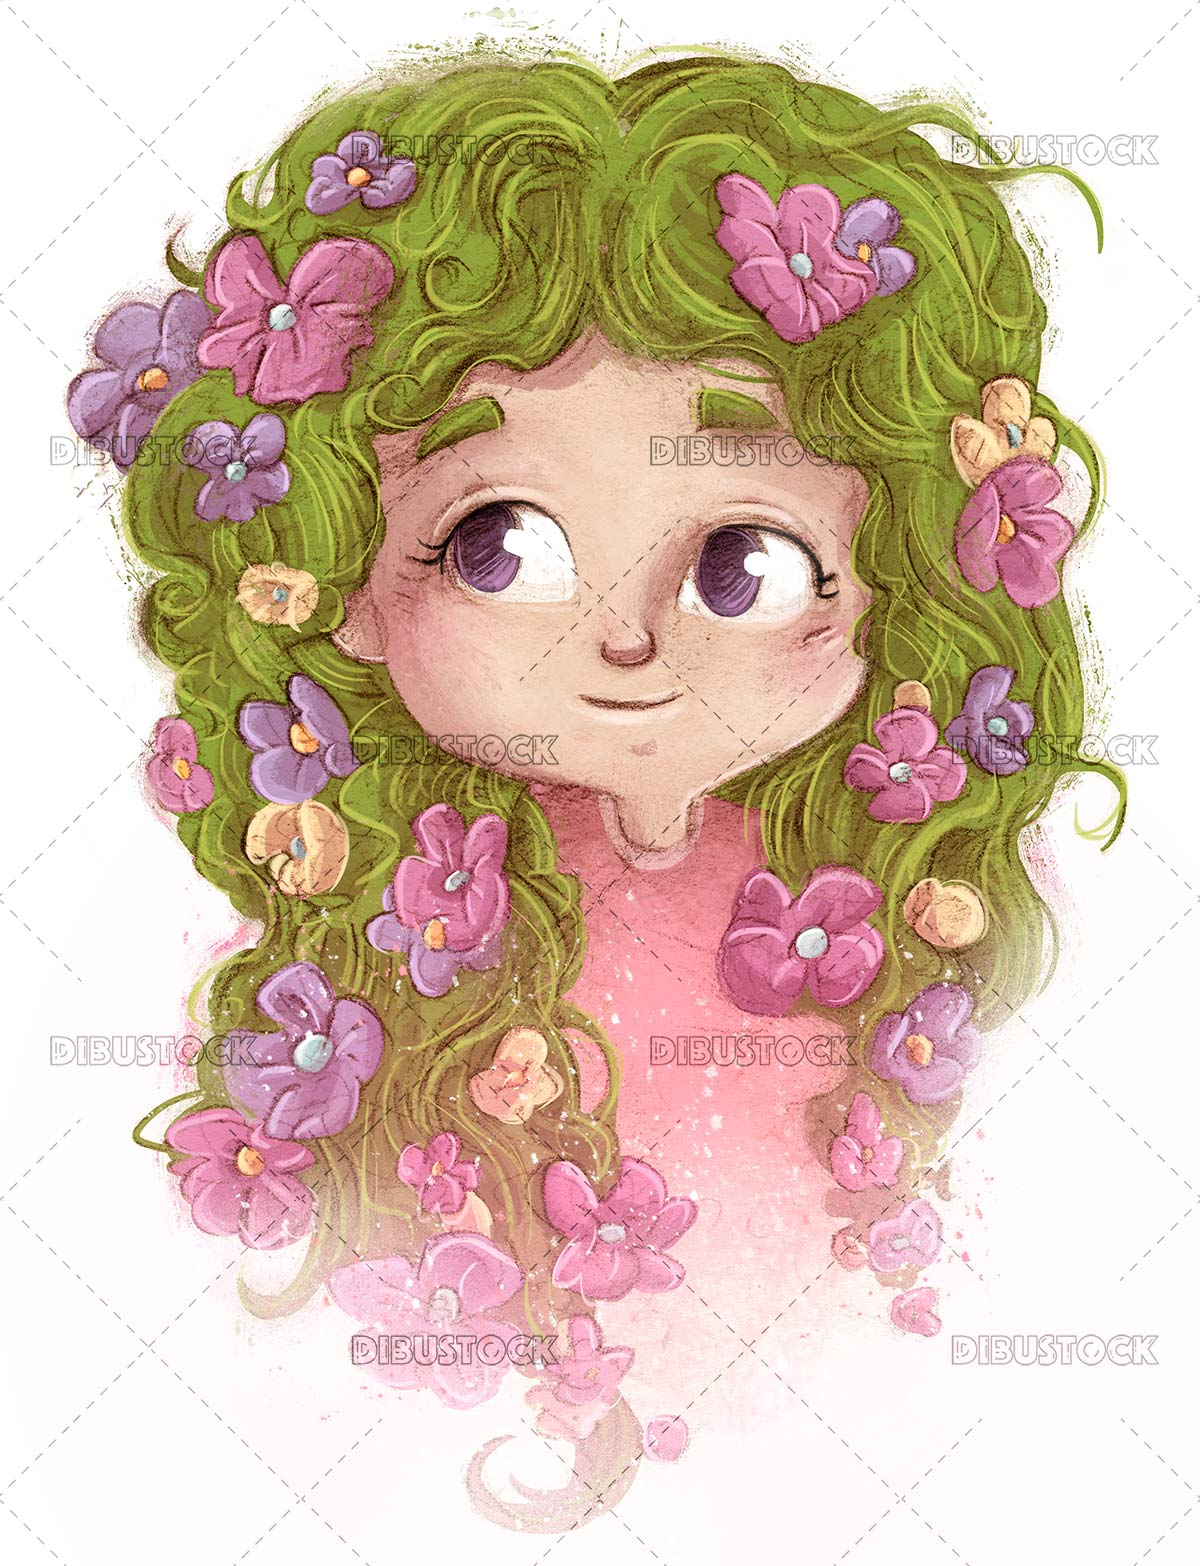 Little girl face with flowers in her hair